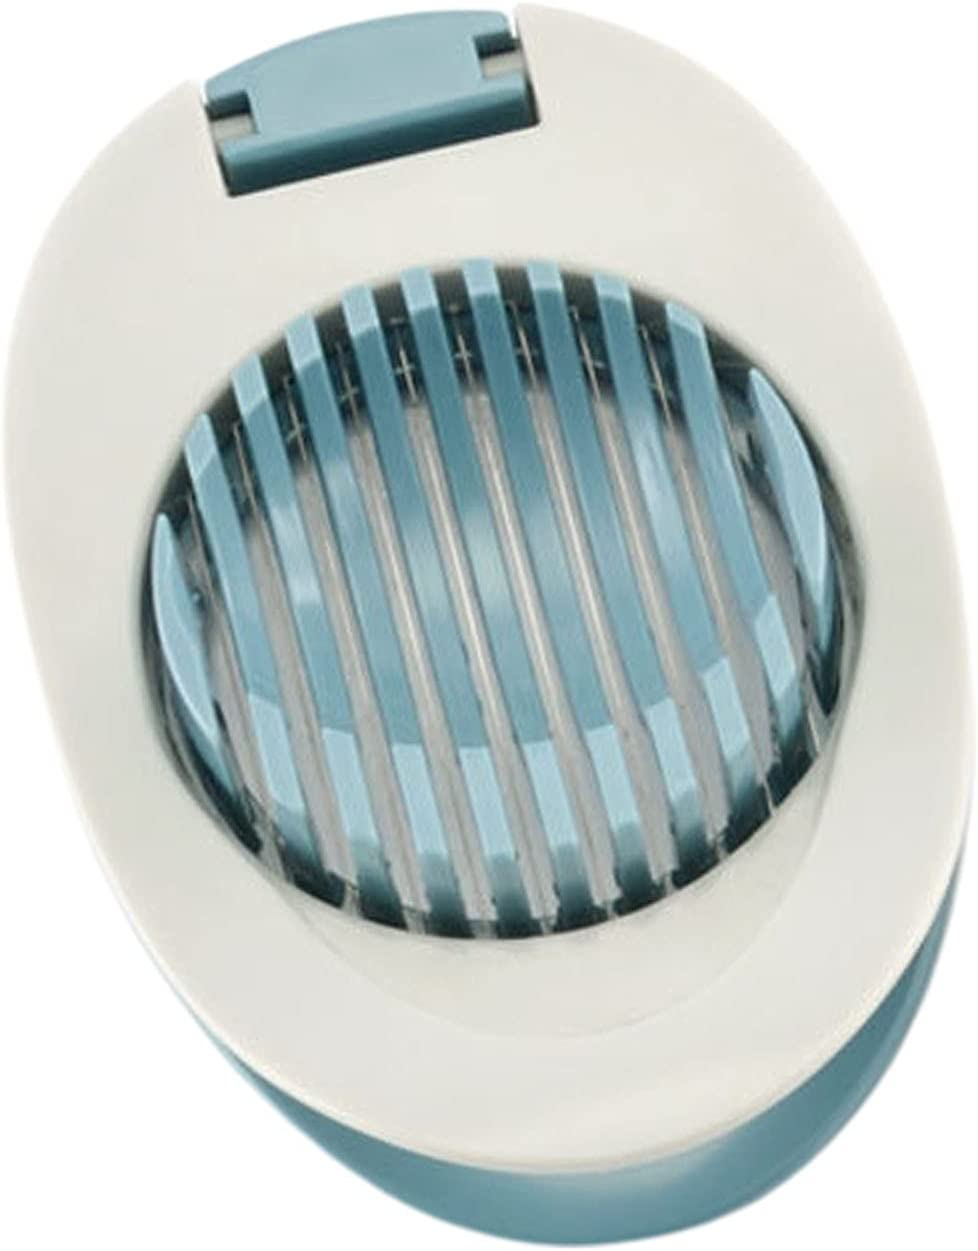 Dolity Stainless Max 49% OFF Steel Egg W Slicer Courier shipping free with Cutting